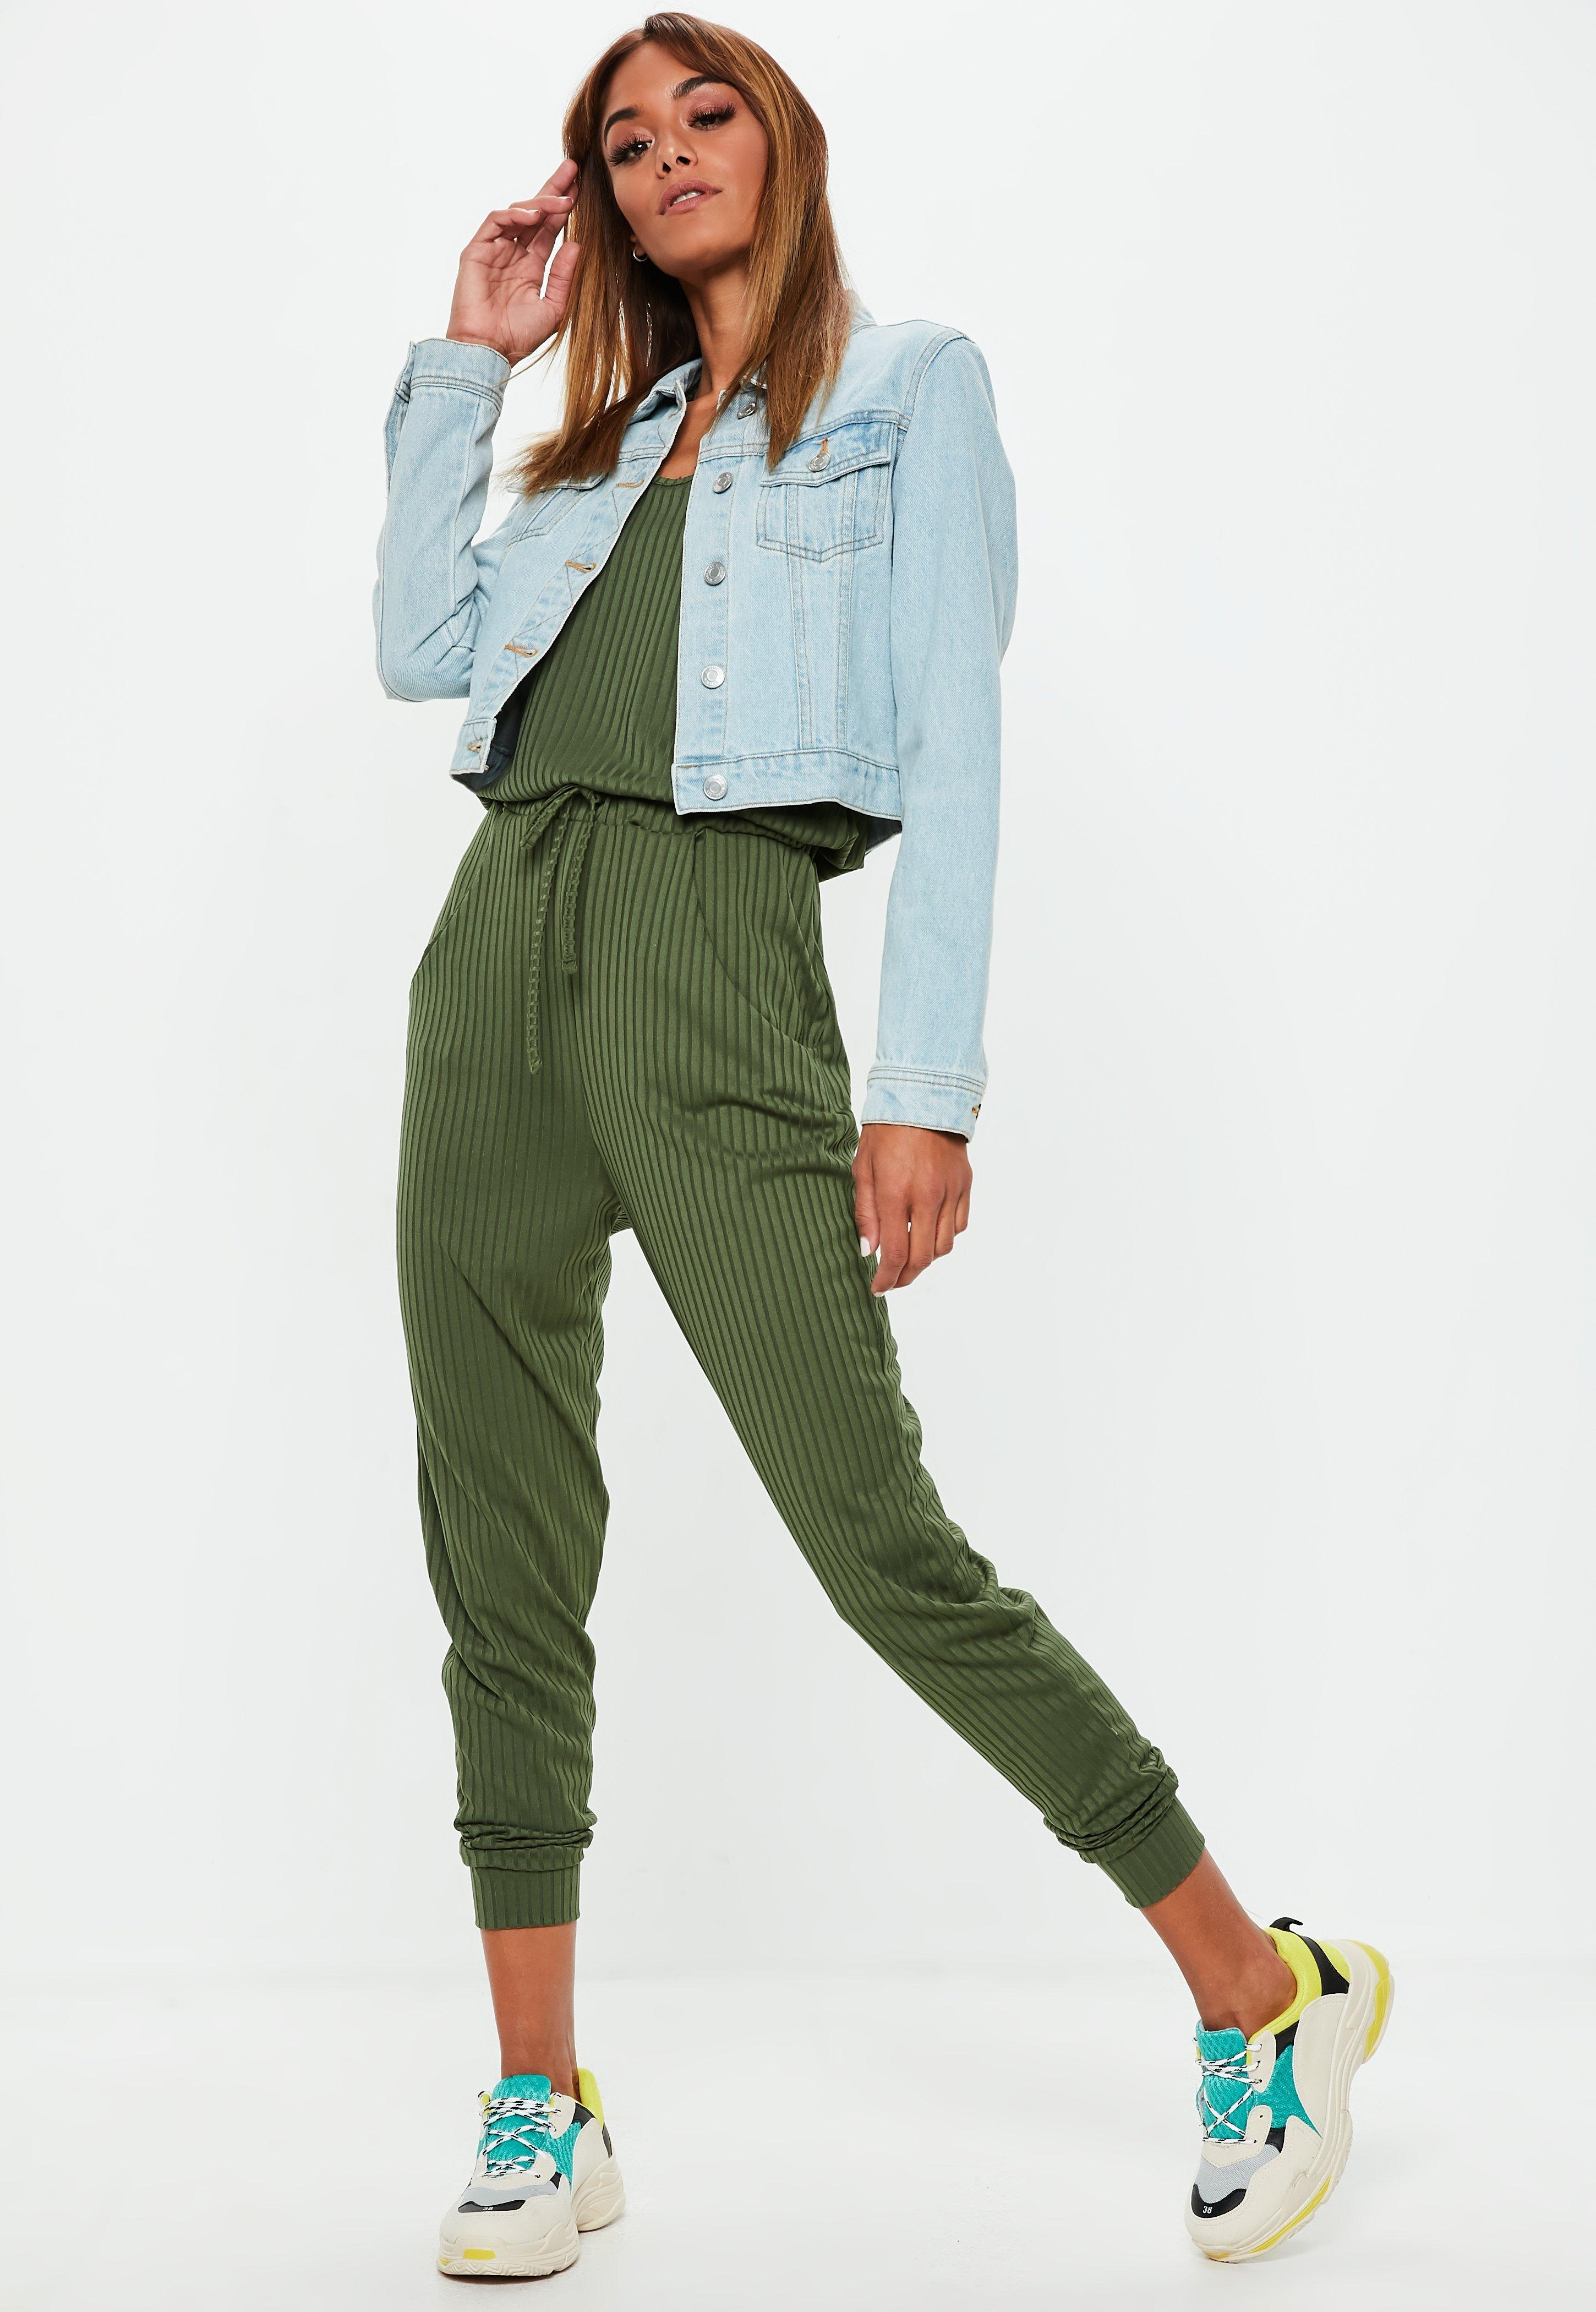 db866f237e2 Missguided - Green Khaki Sleeveless Ribbed Jersey Jumpsuit - Lyst. View  fullscreen